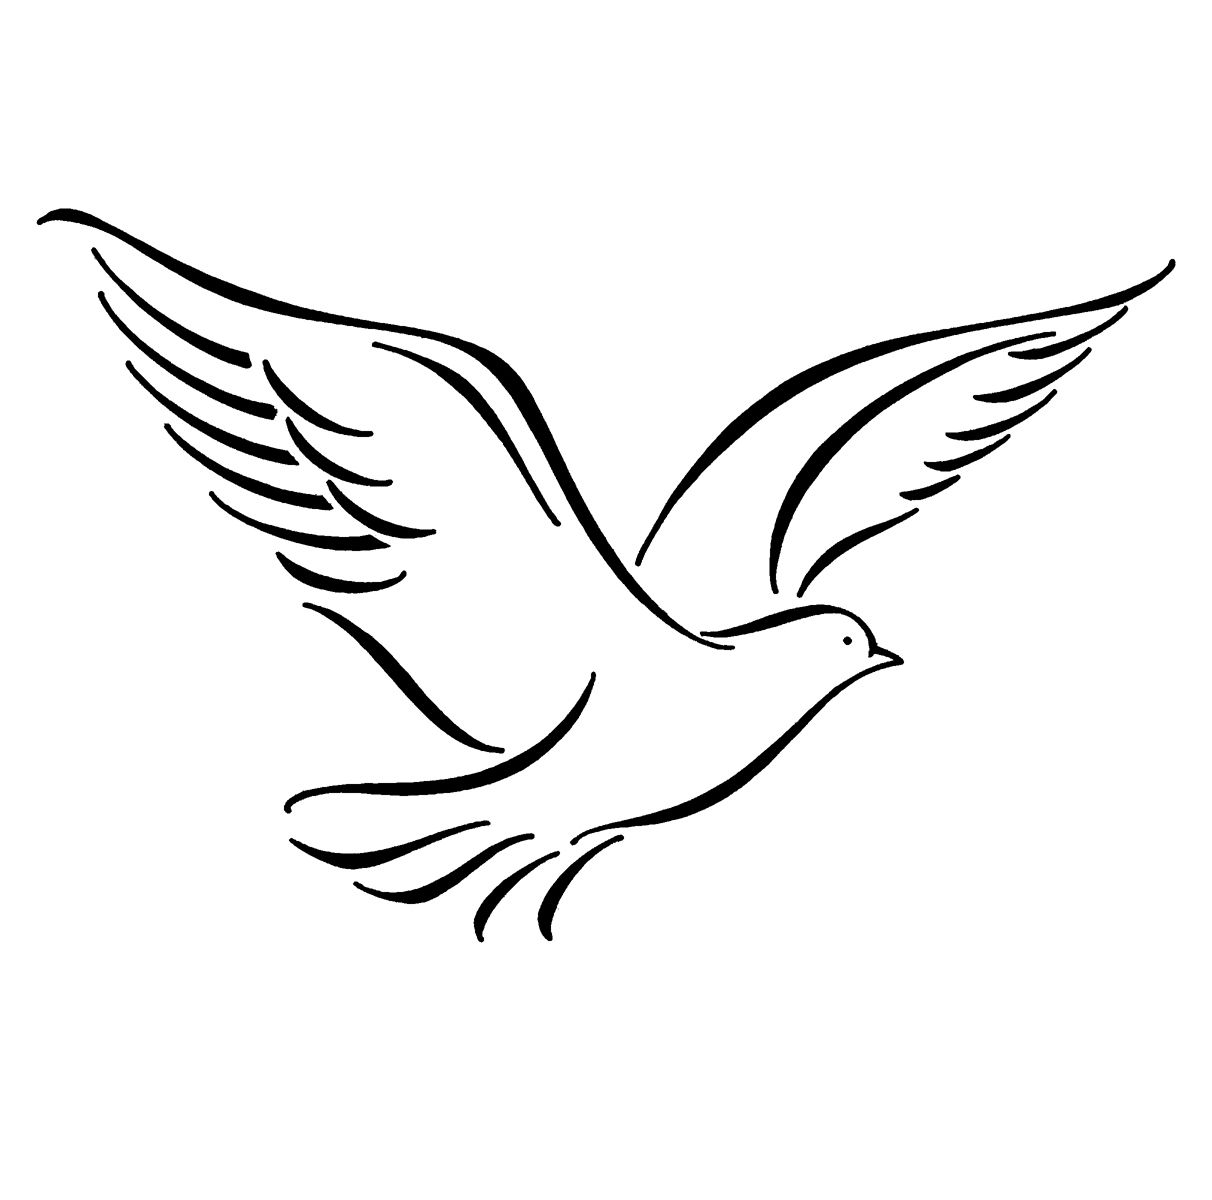 Uncategorized How To Draw A Simple Bird Flying flying birds template from nikki mcclure julyaugust 2009 drawing of clipart best